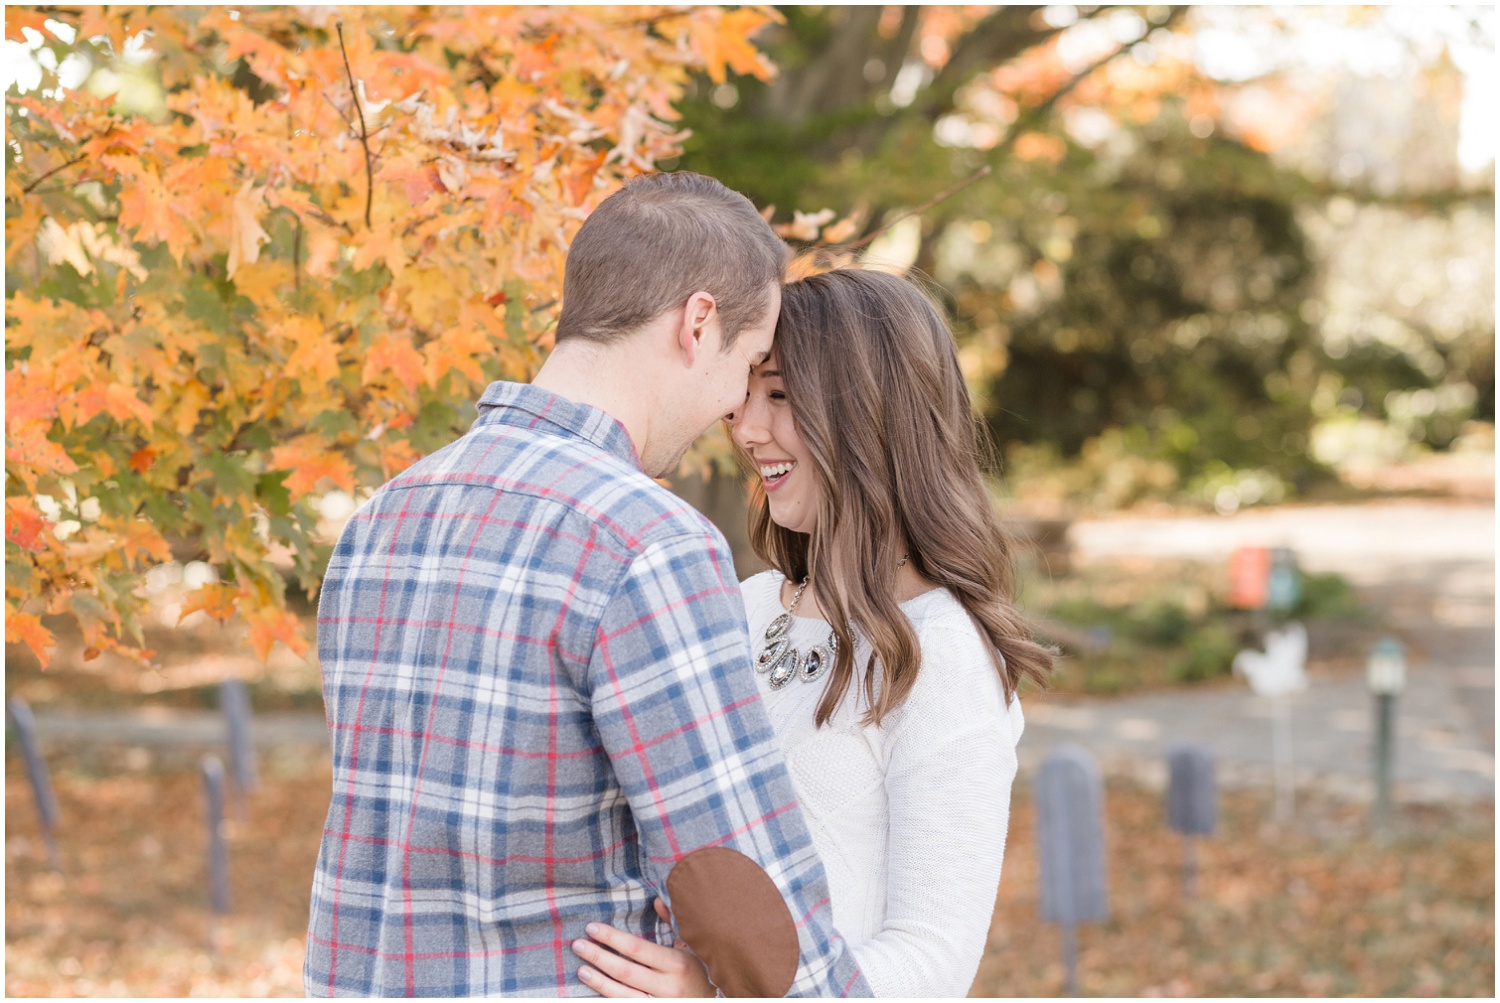 yew-dell-gardens-engagement-session_0108.jpg